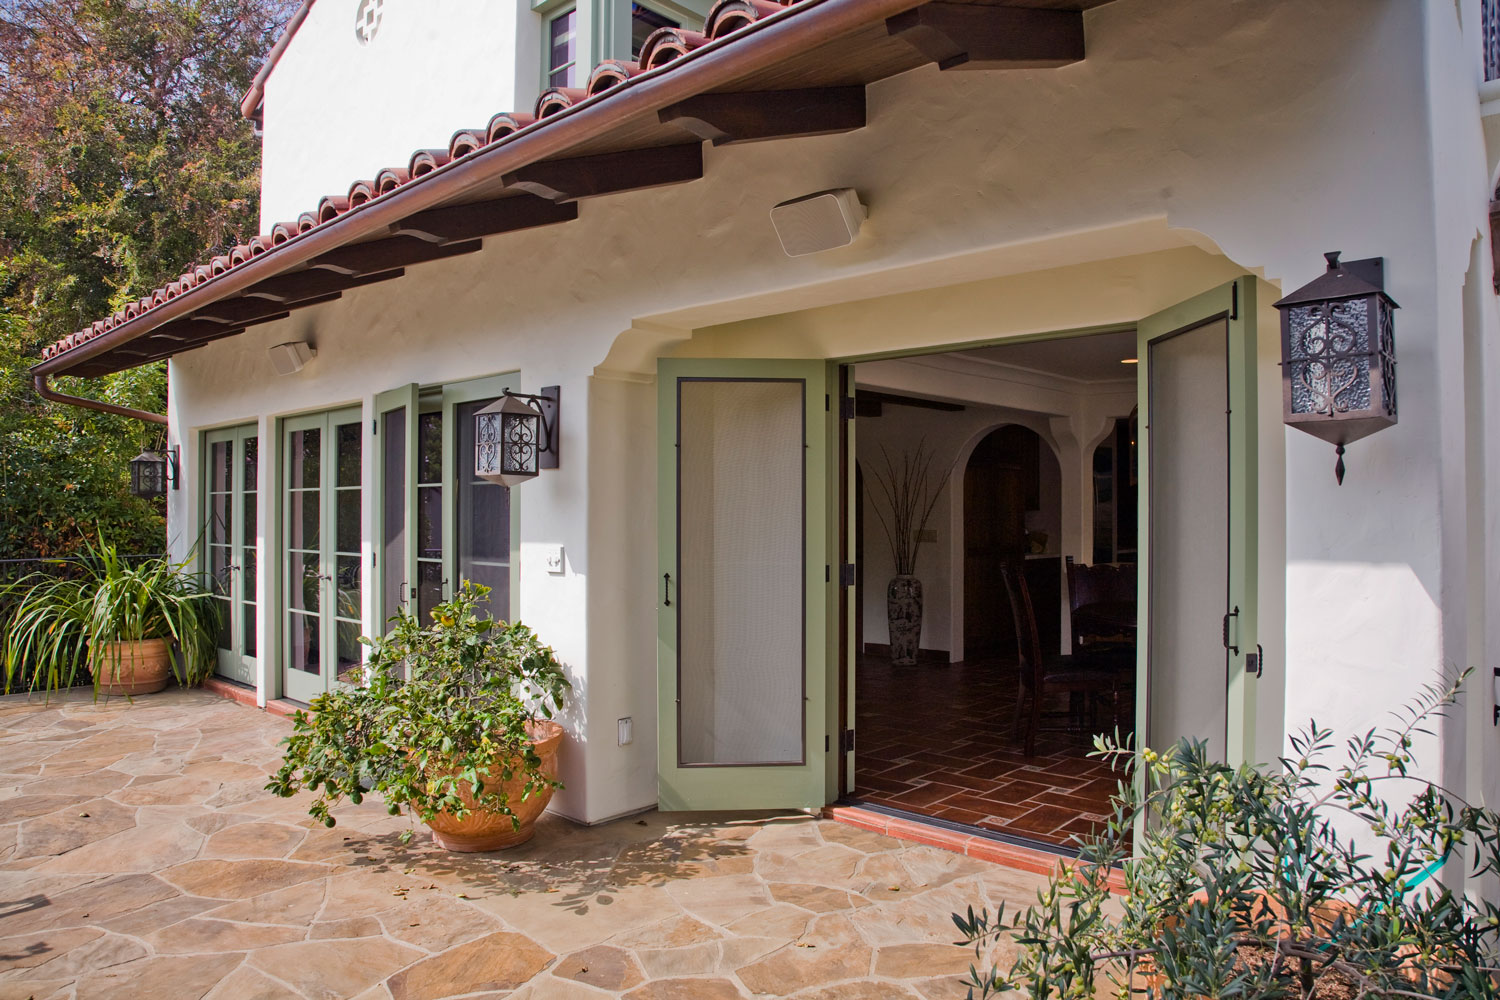 18-Spanish-Style-Rear-Patio-Flagstone-French-Doors-Gary-Drake-General-Contractor.jpg